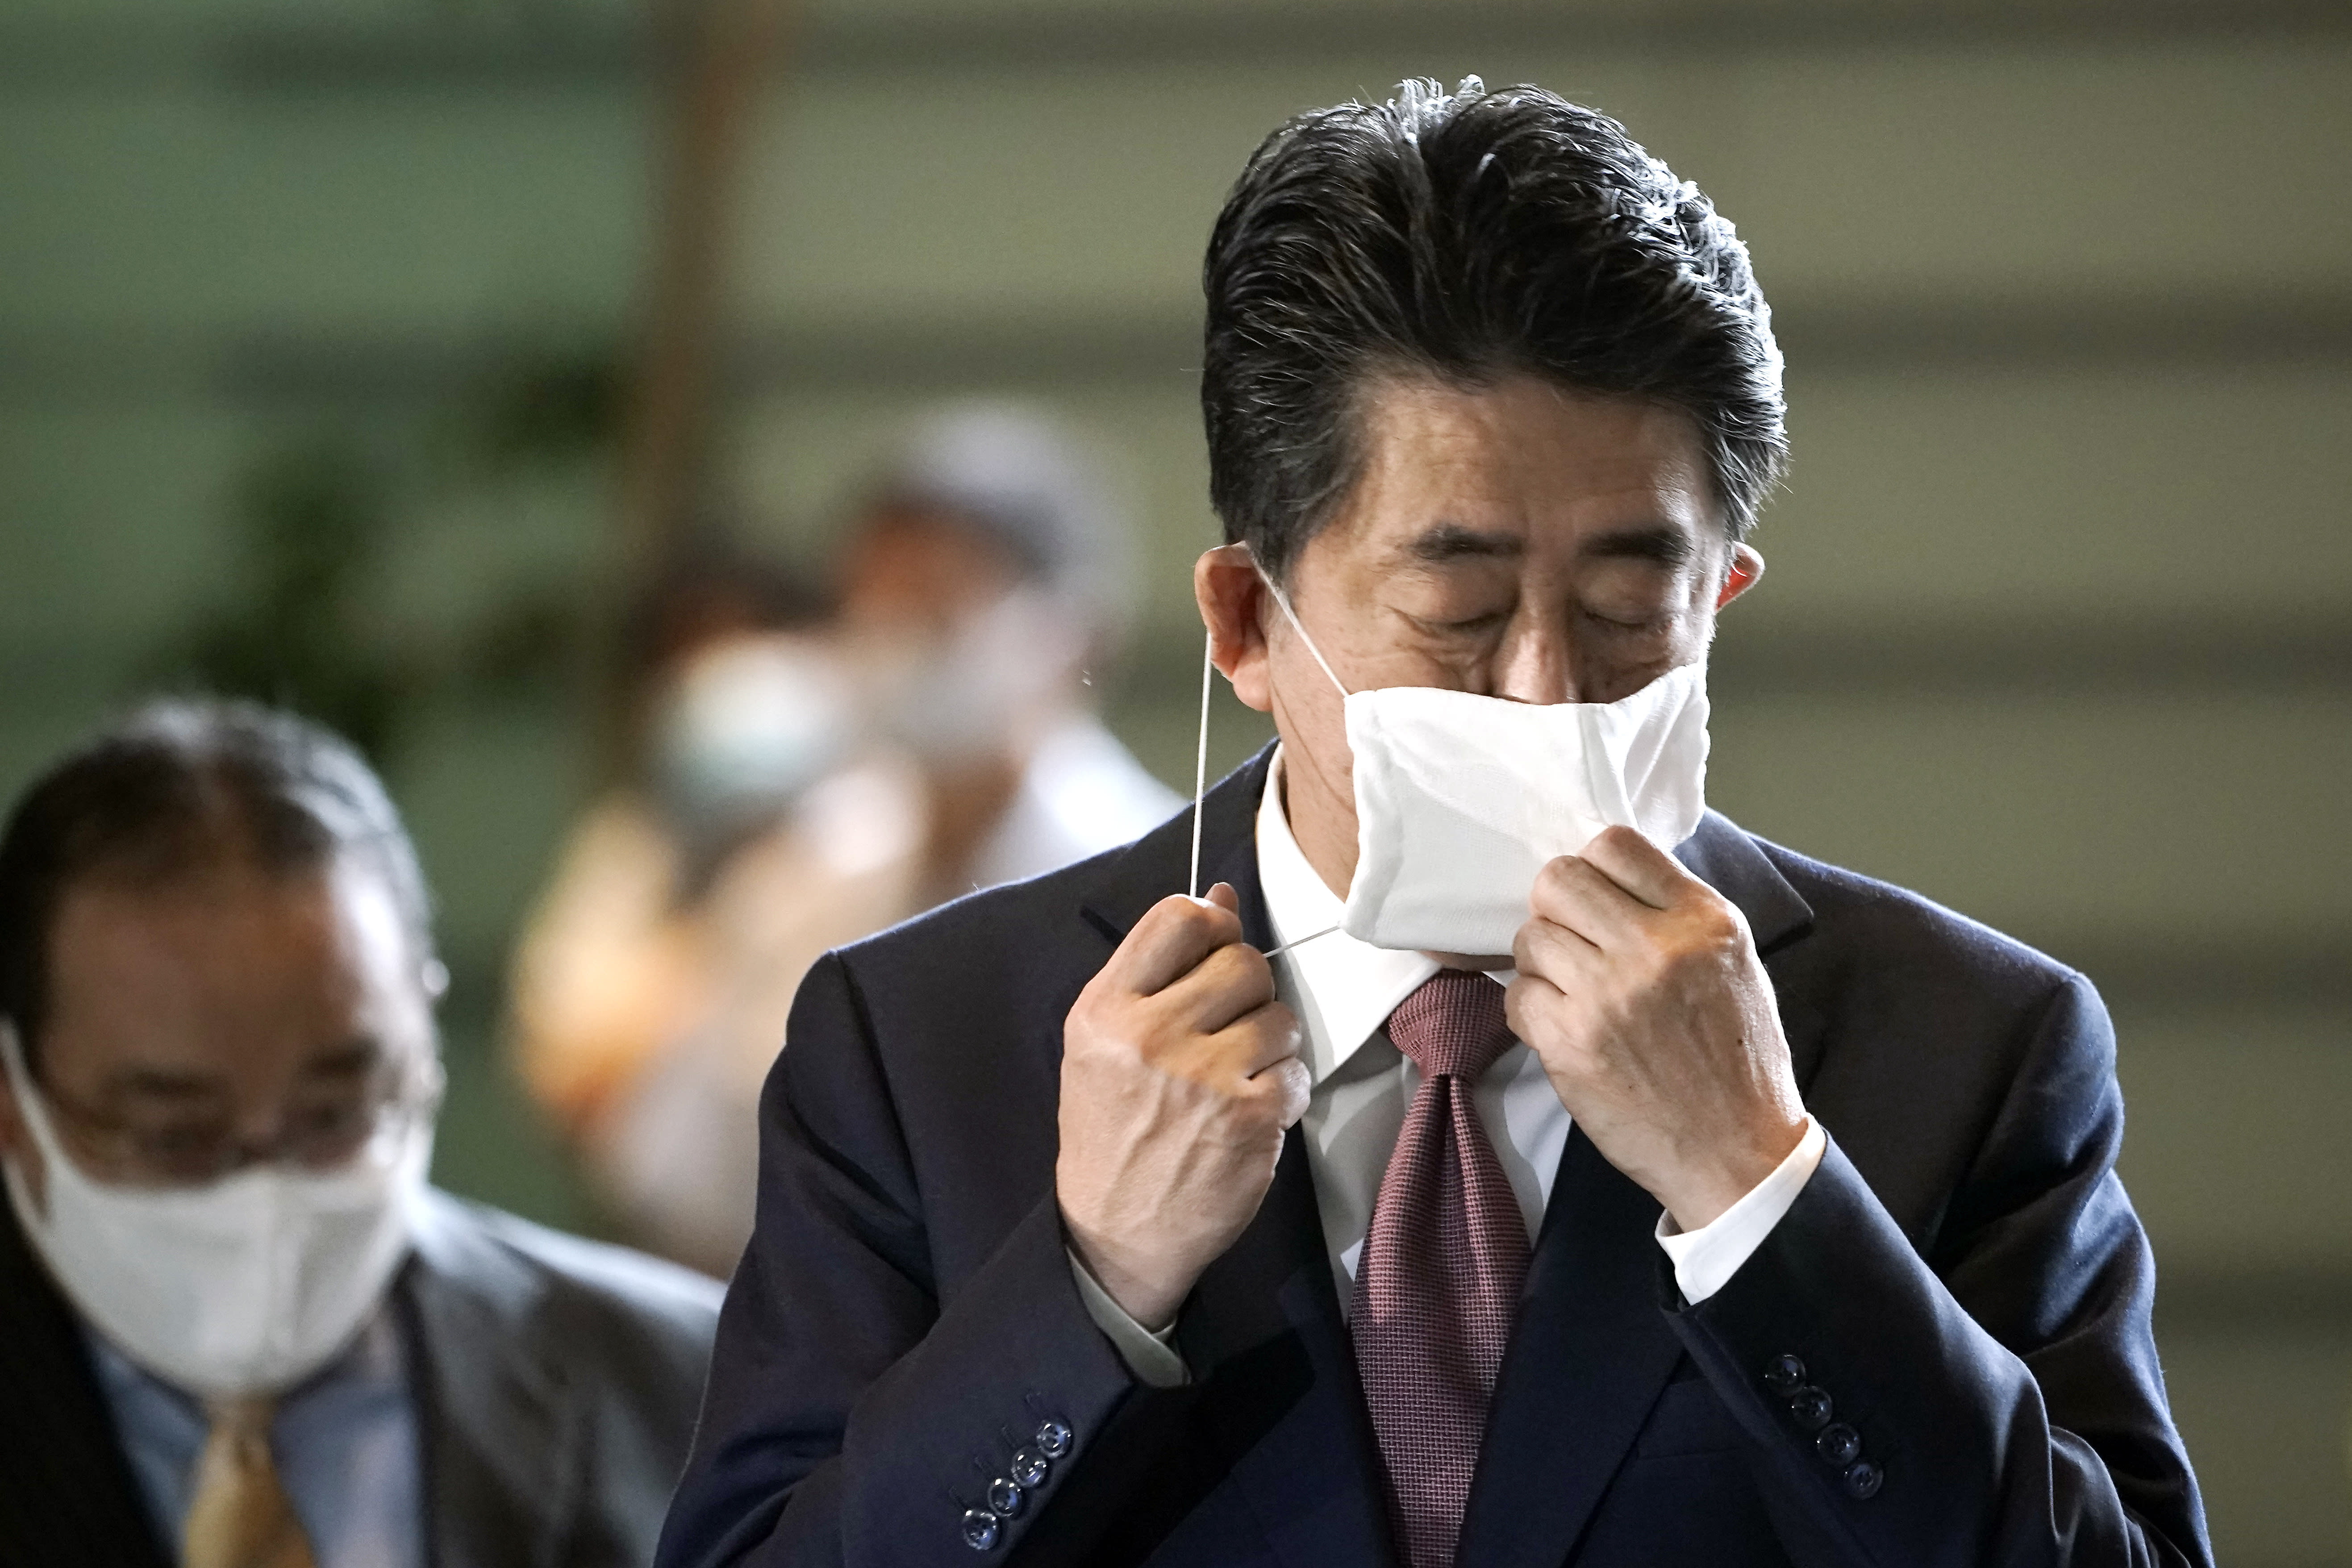 Japan's outgoing Prime Minister Shinzo Abe takes off his face mask as he arrives at the prime minister's office for a cabniet meeting Wednesday, Sept. 16, 2020, in Tokyo. Abe and his Cabinet resigned, clearing the way for his successor Yoshihide Suga to take over after parliamentary confirmation later in the day. (AP Photo/Eugene Hoshiko)